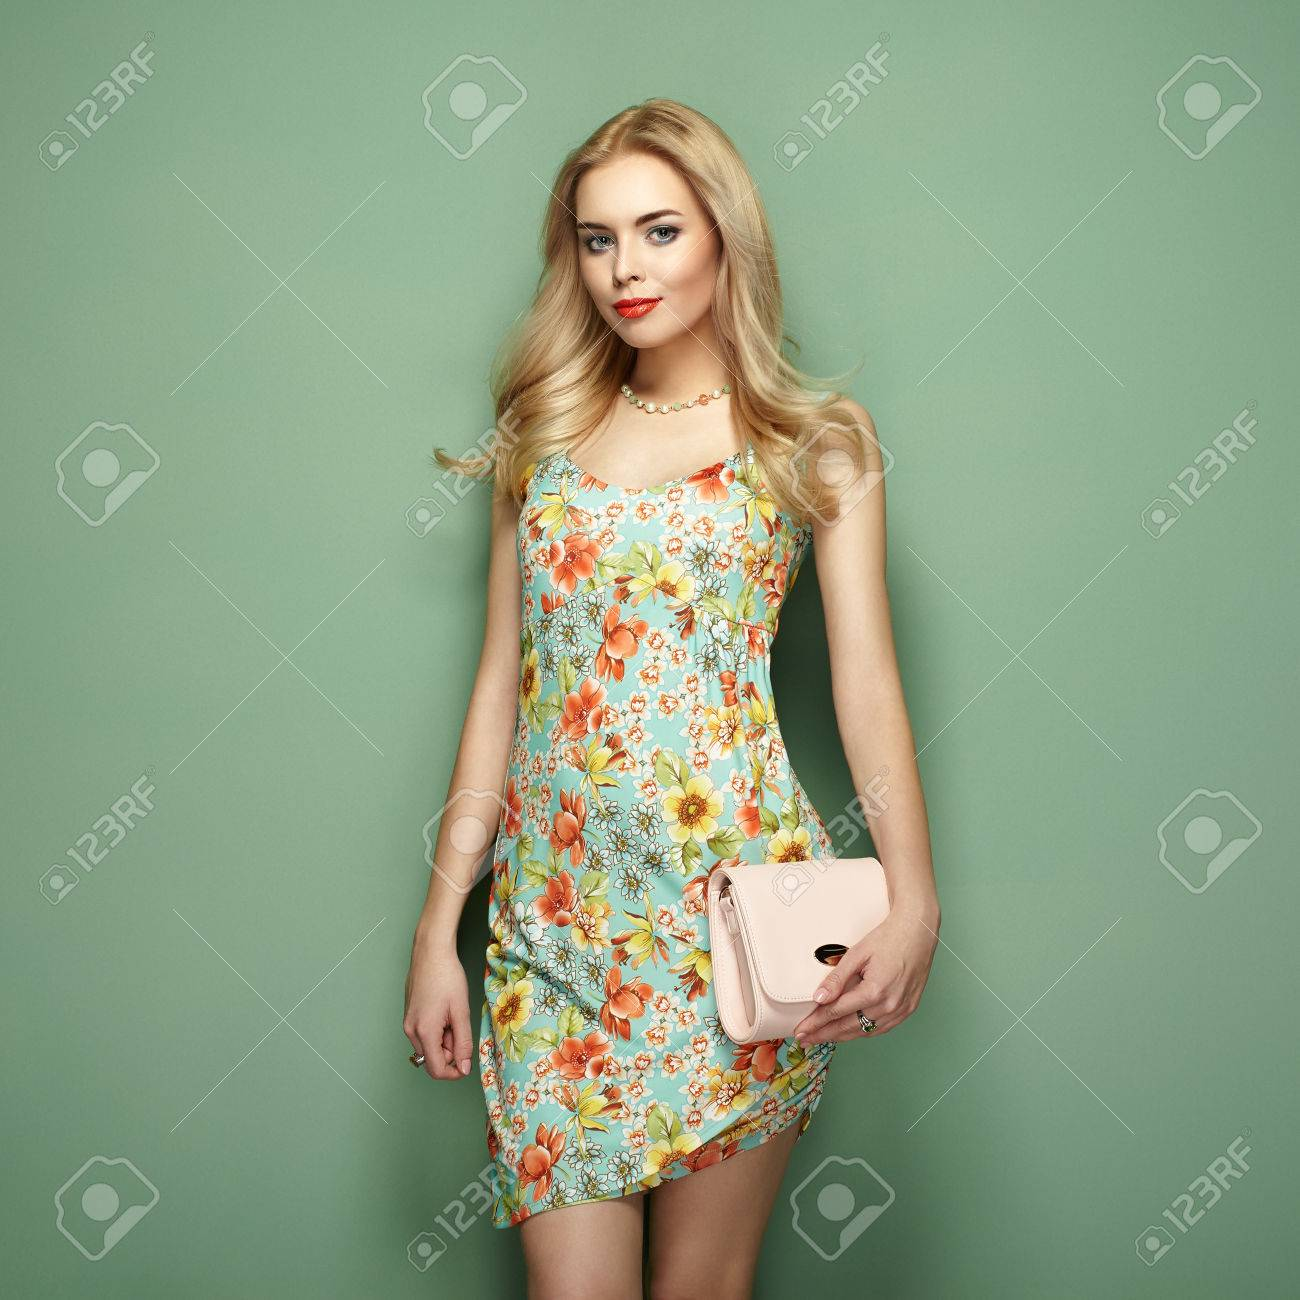 3c4d16666fc Blonde young woman in floral summer dress. Girl posing on a green background.  Jewelry